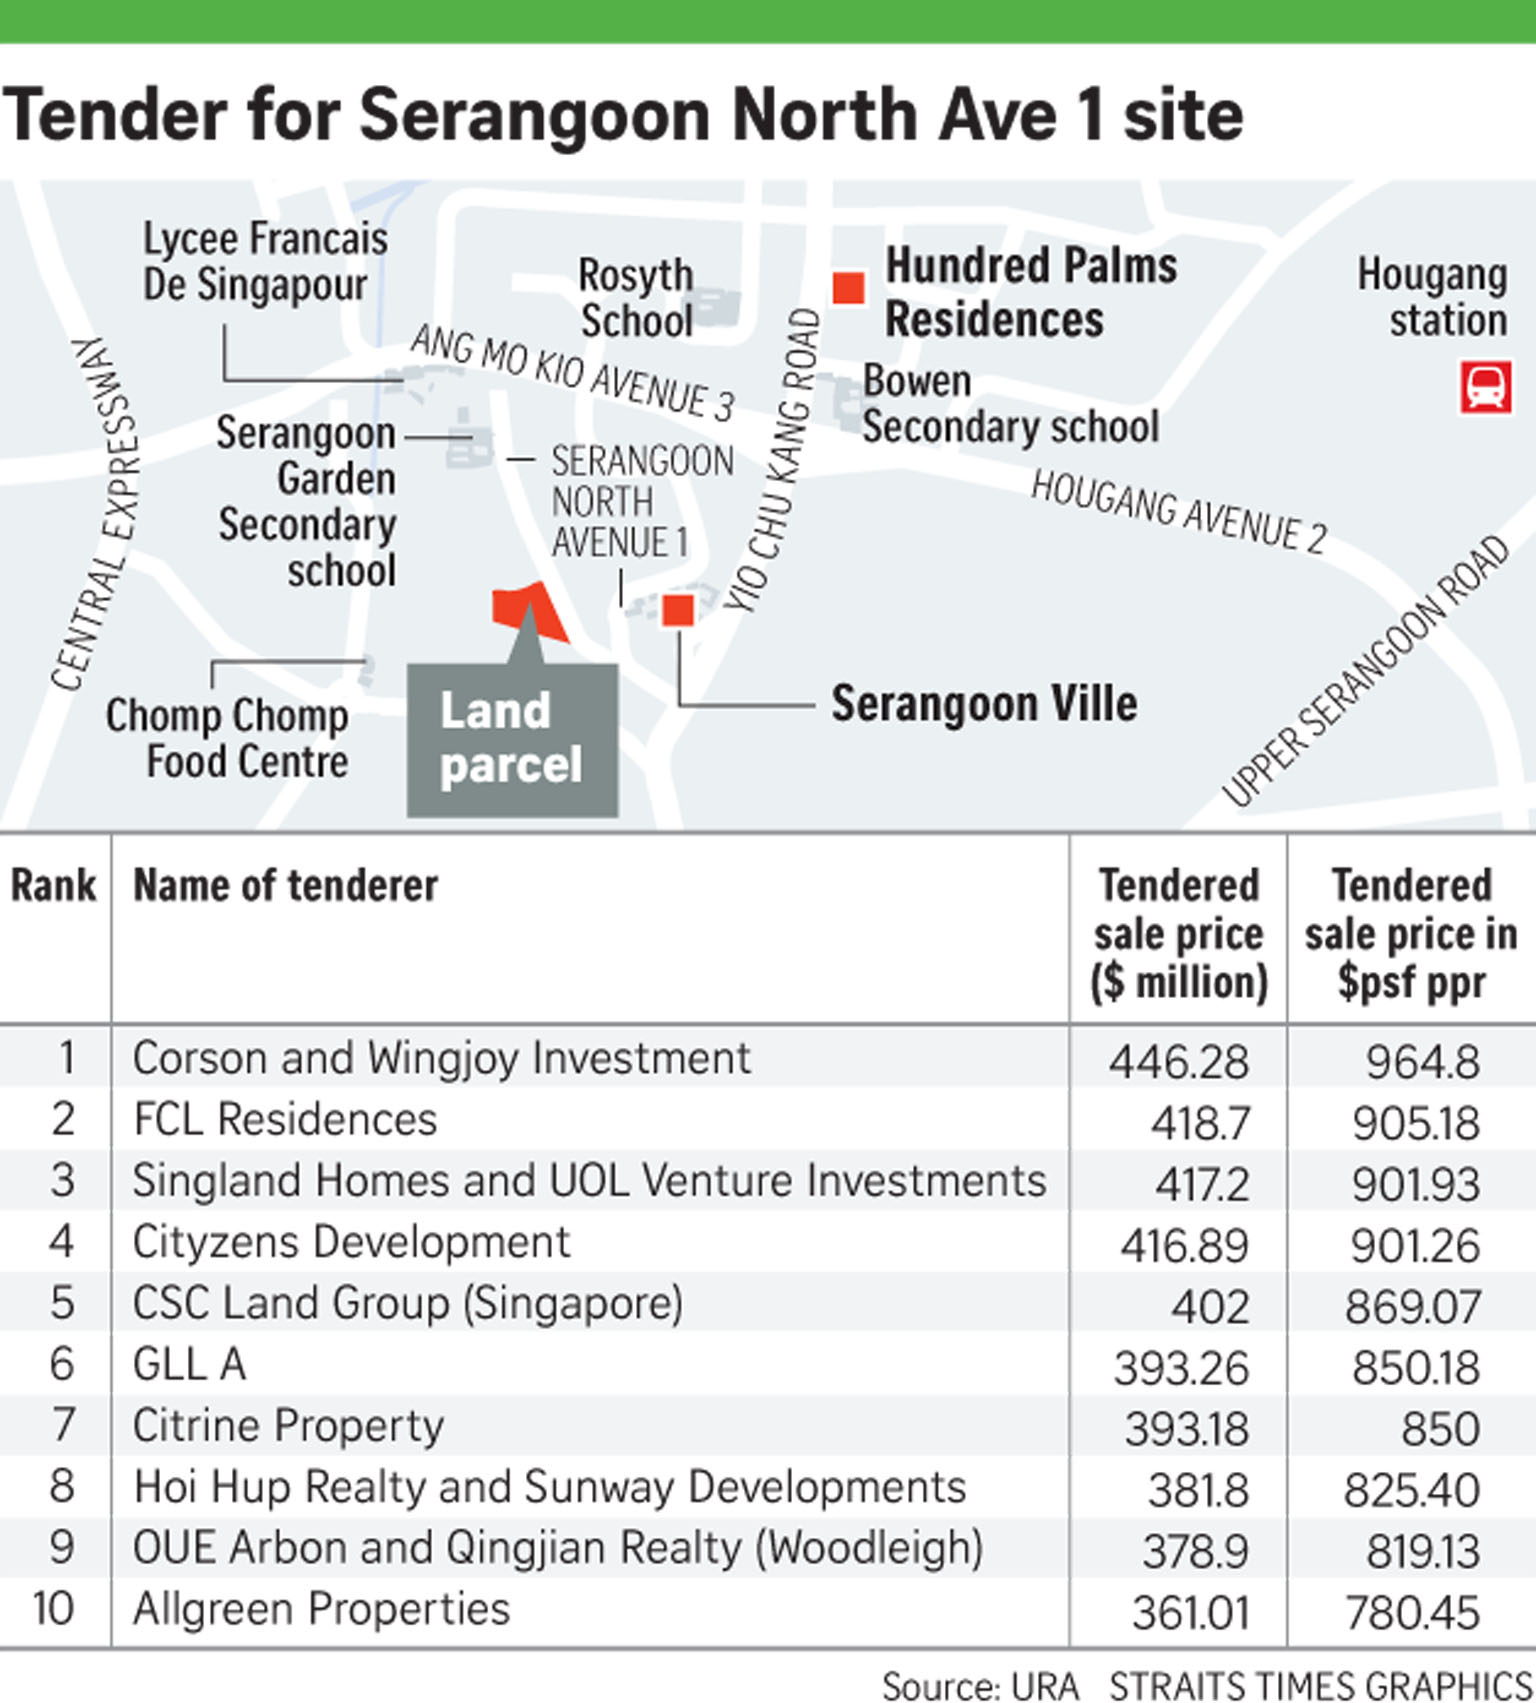 Tender for Serangoon North Avenue 1 site